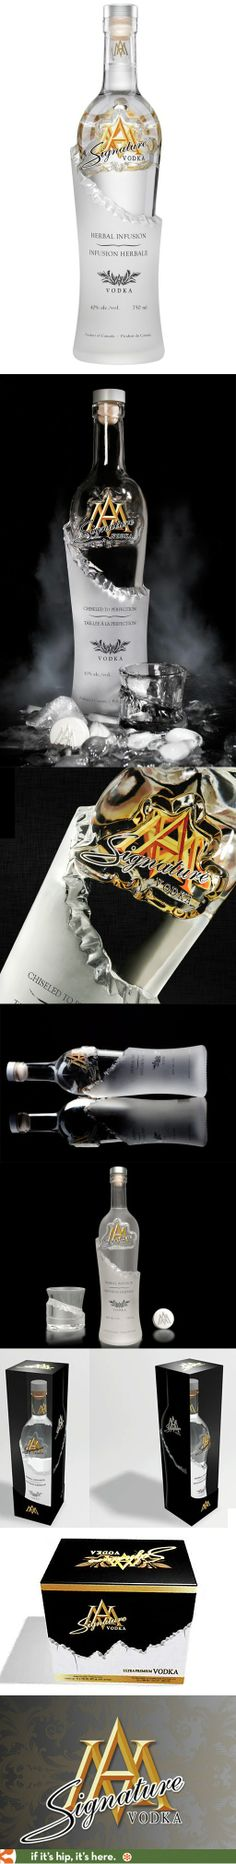 """Signature Vodka (herbal-infused) in an unusual chiseled bottle design."""